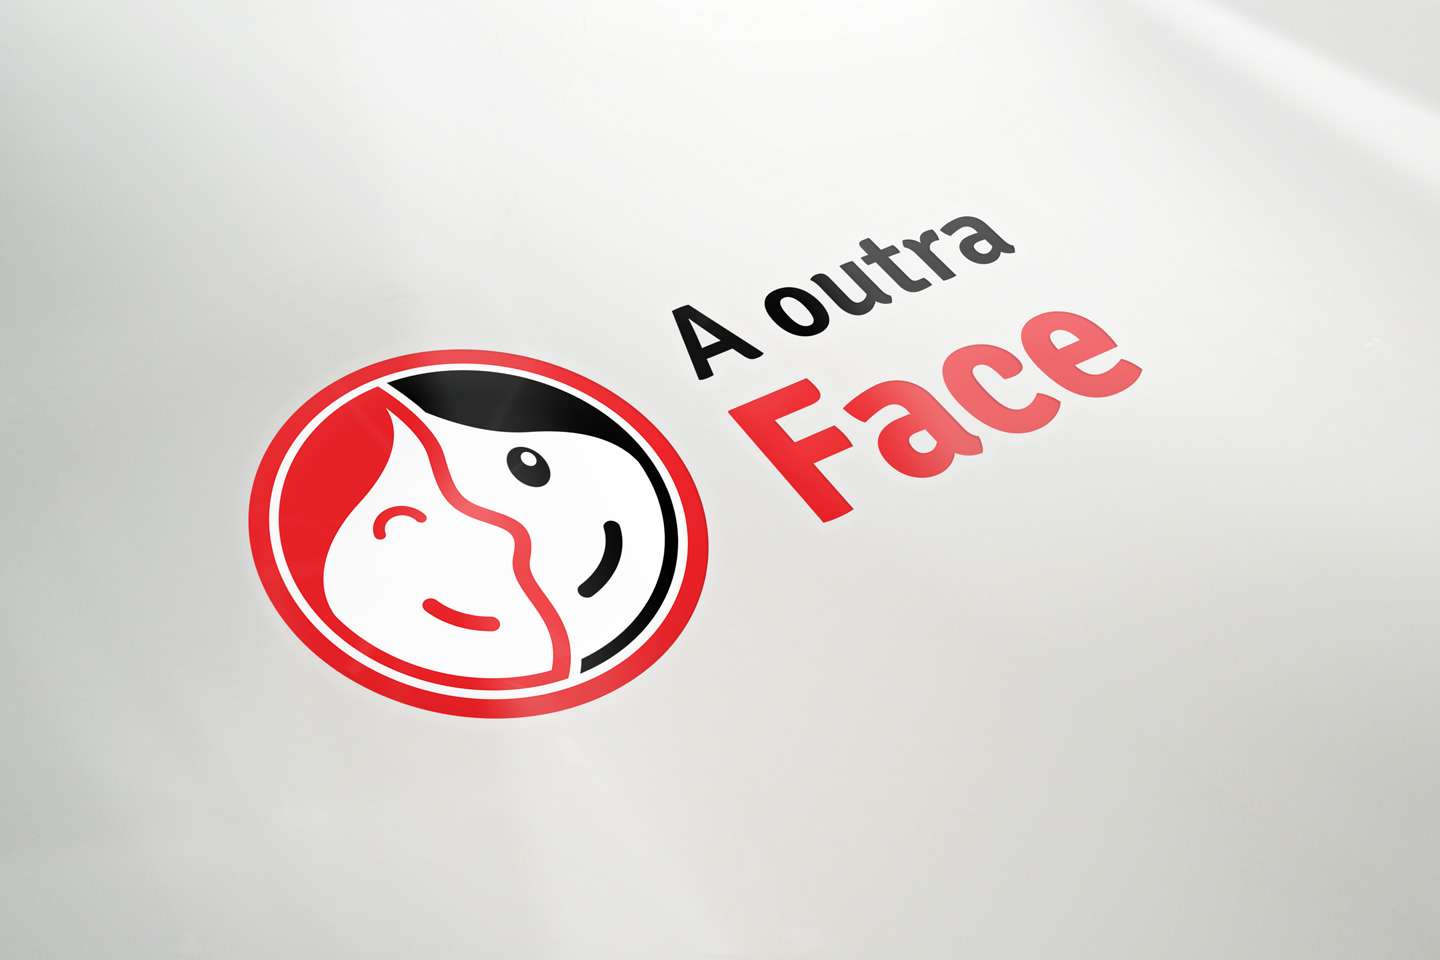 logo_perspective_outraface